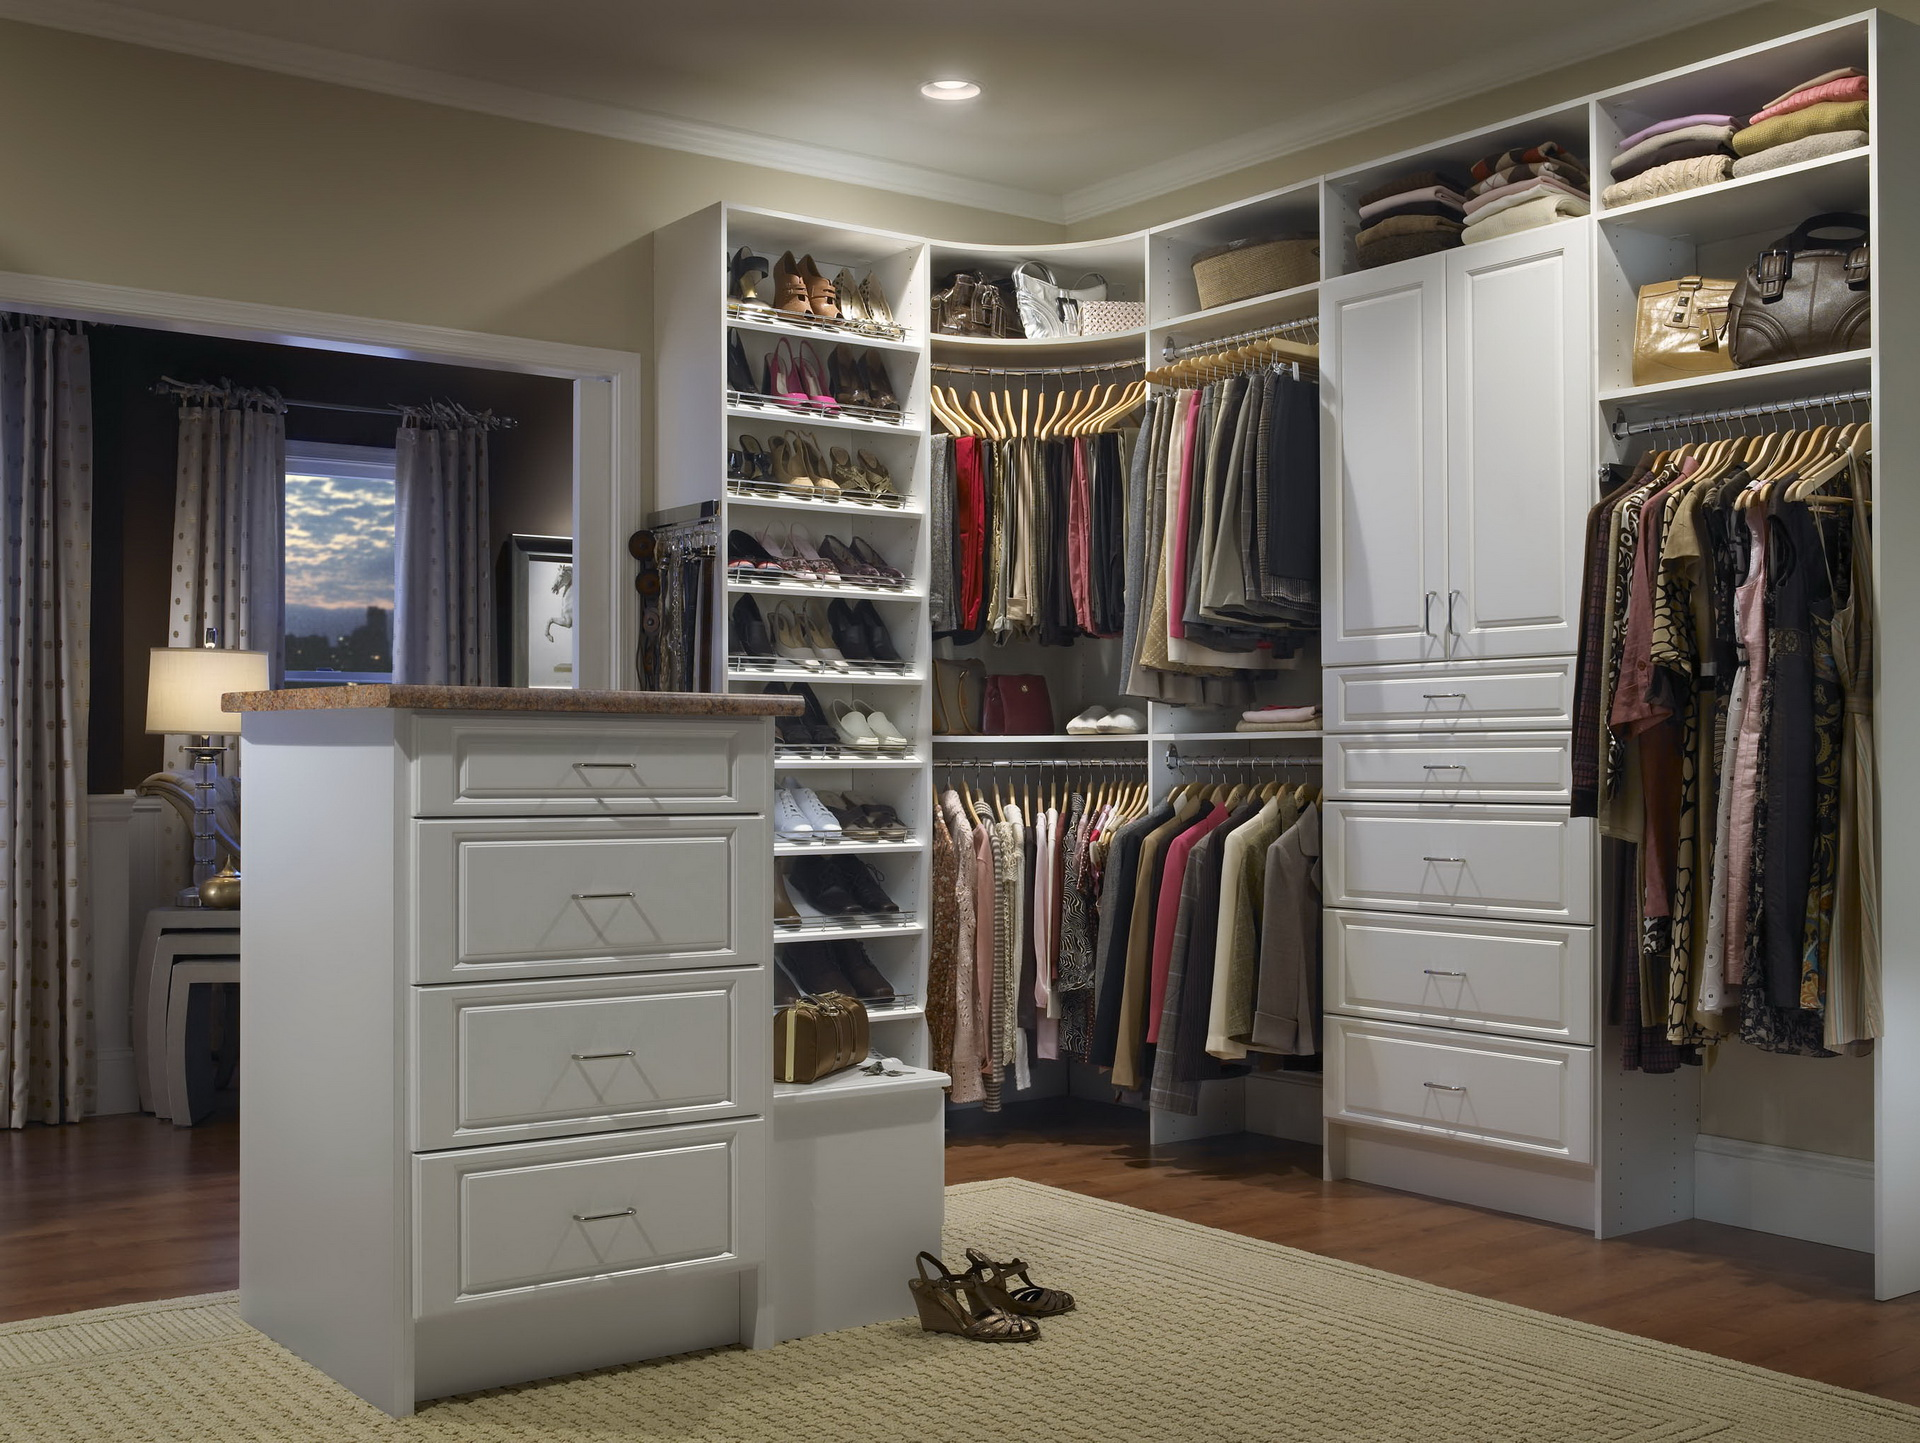 walk-in-closet-designs-plans-photo-9